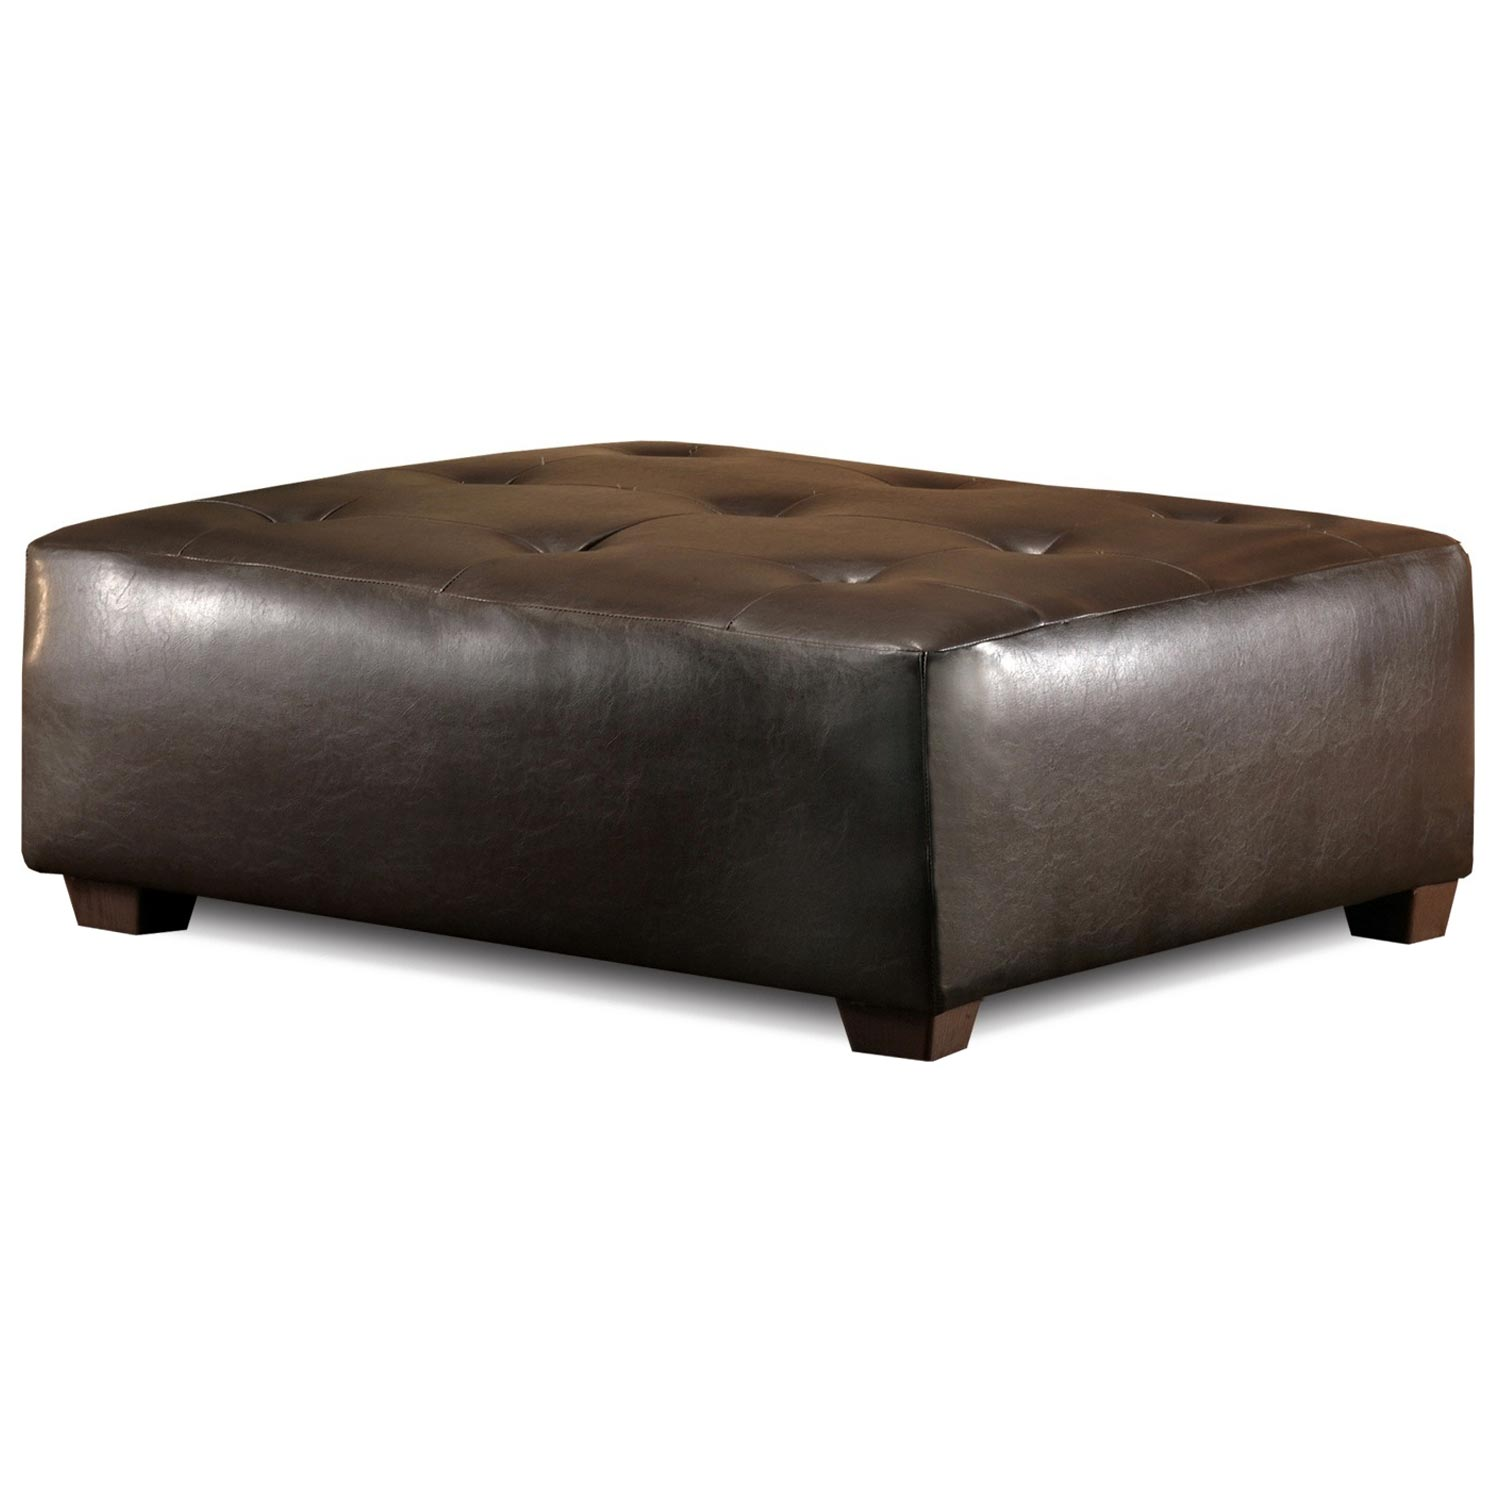 Upholstered Square Ottoman - Tufting, Brown